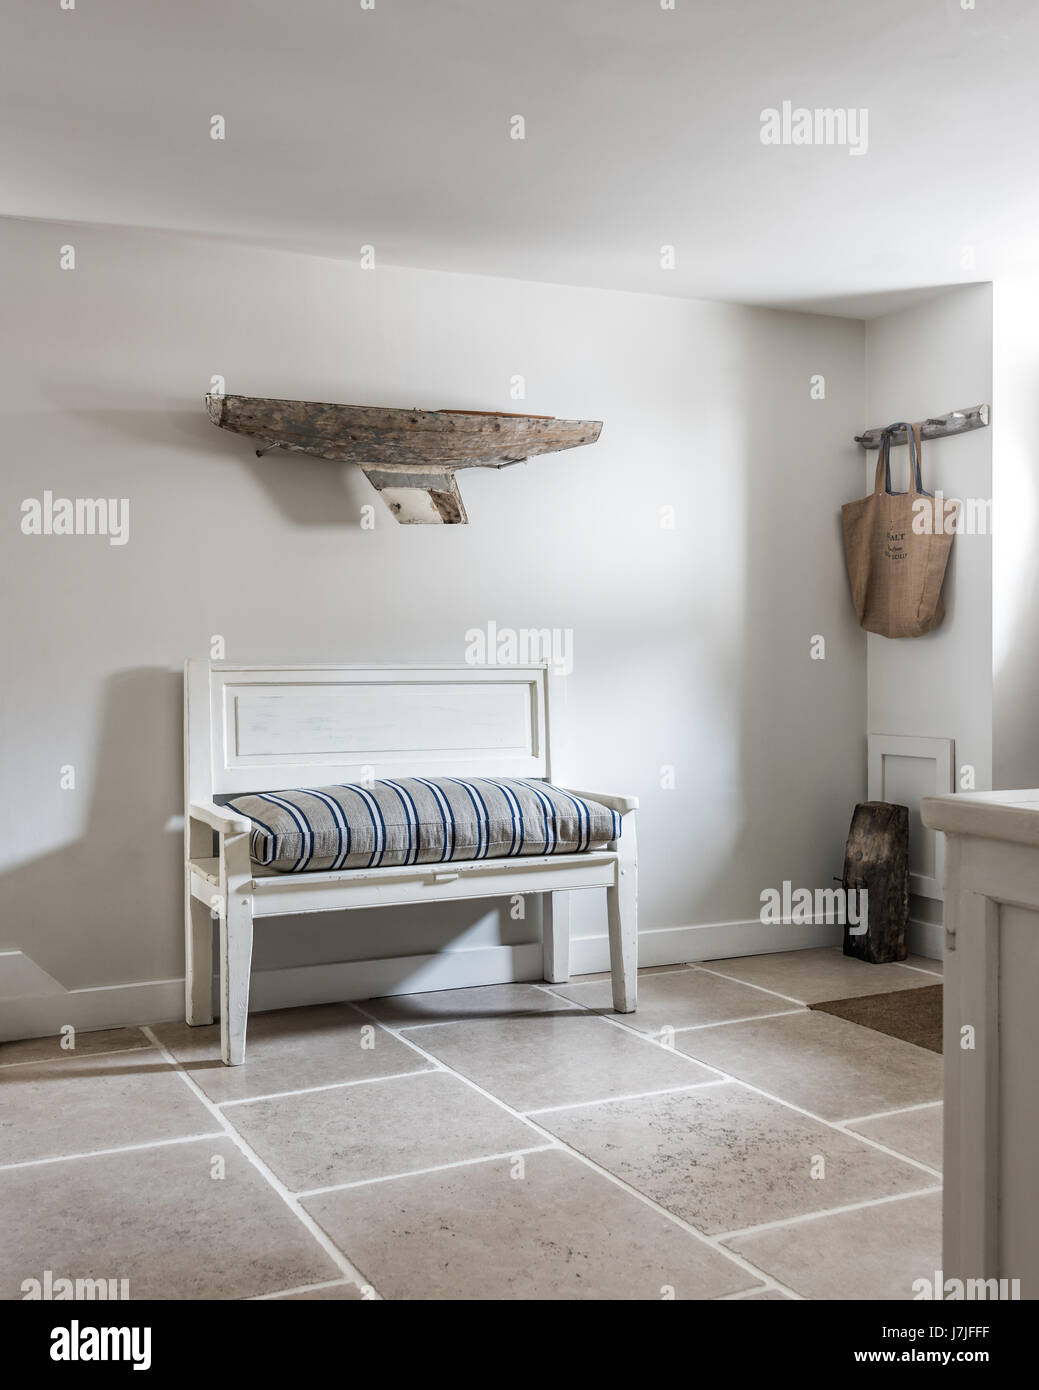 Strong White Farrow And Ball A Driftwood Boat On Wall Above Antique Bench With Ticking